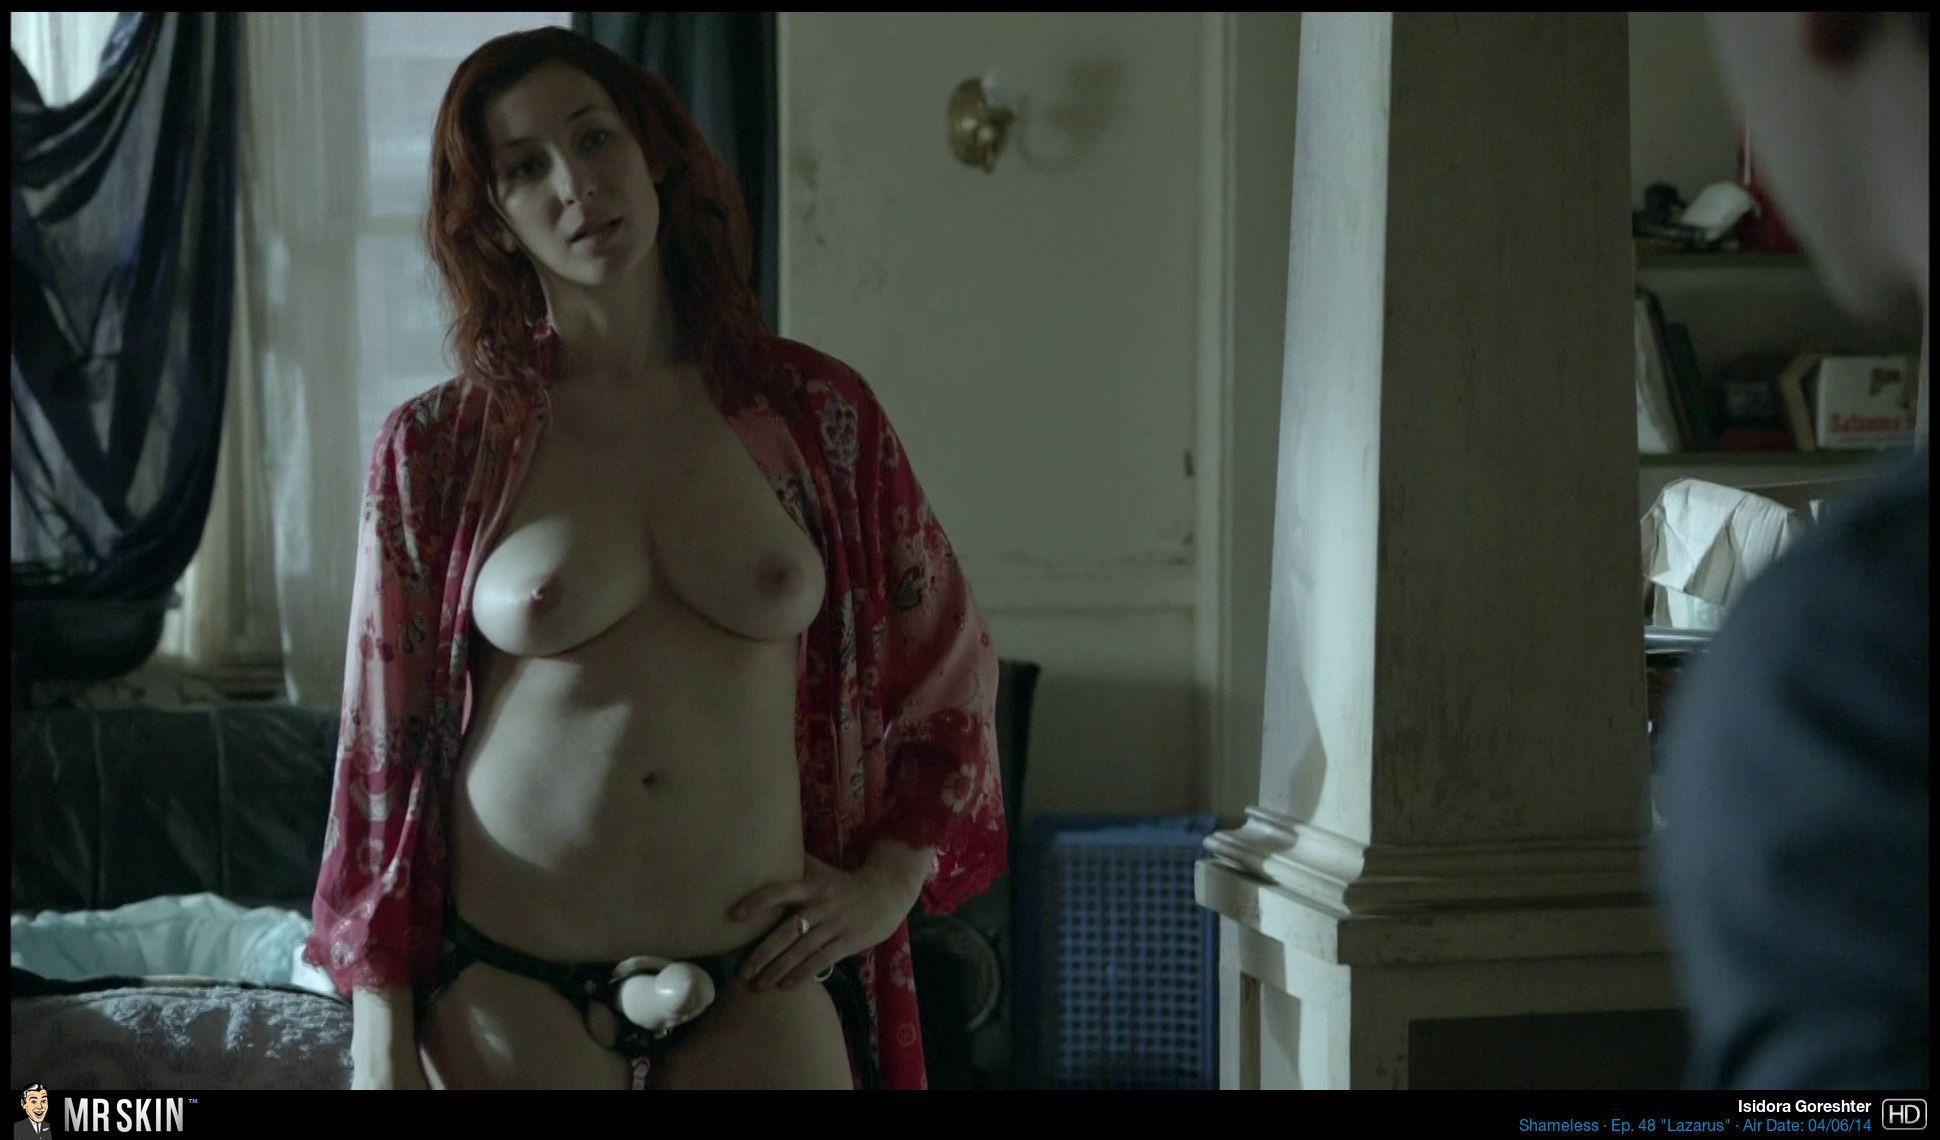 Emmy rossum nude scene in shameless series scandalplanetcom